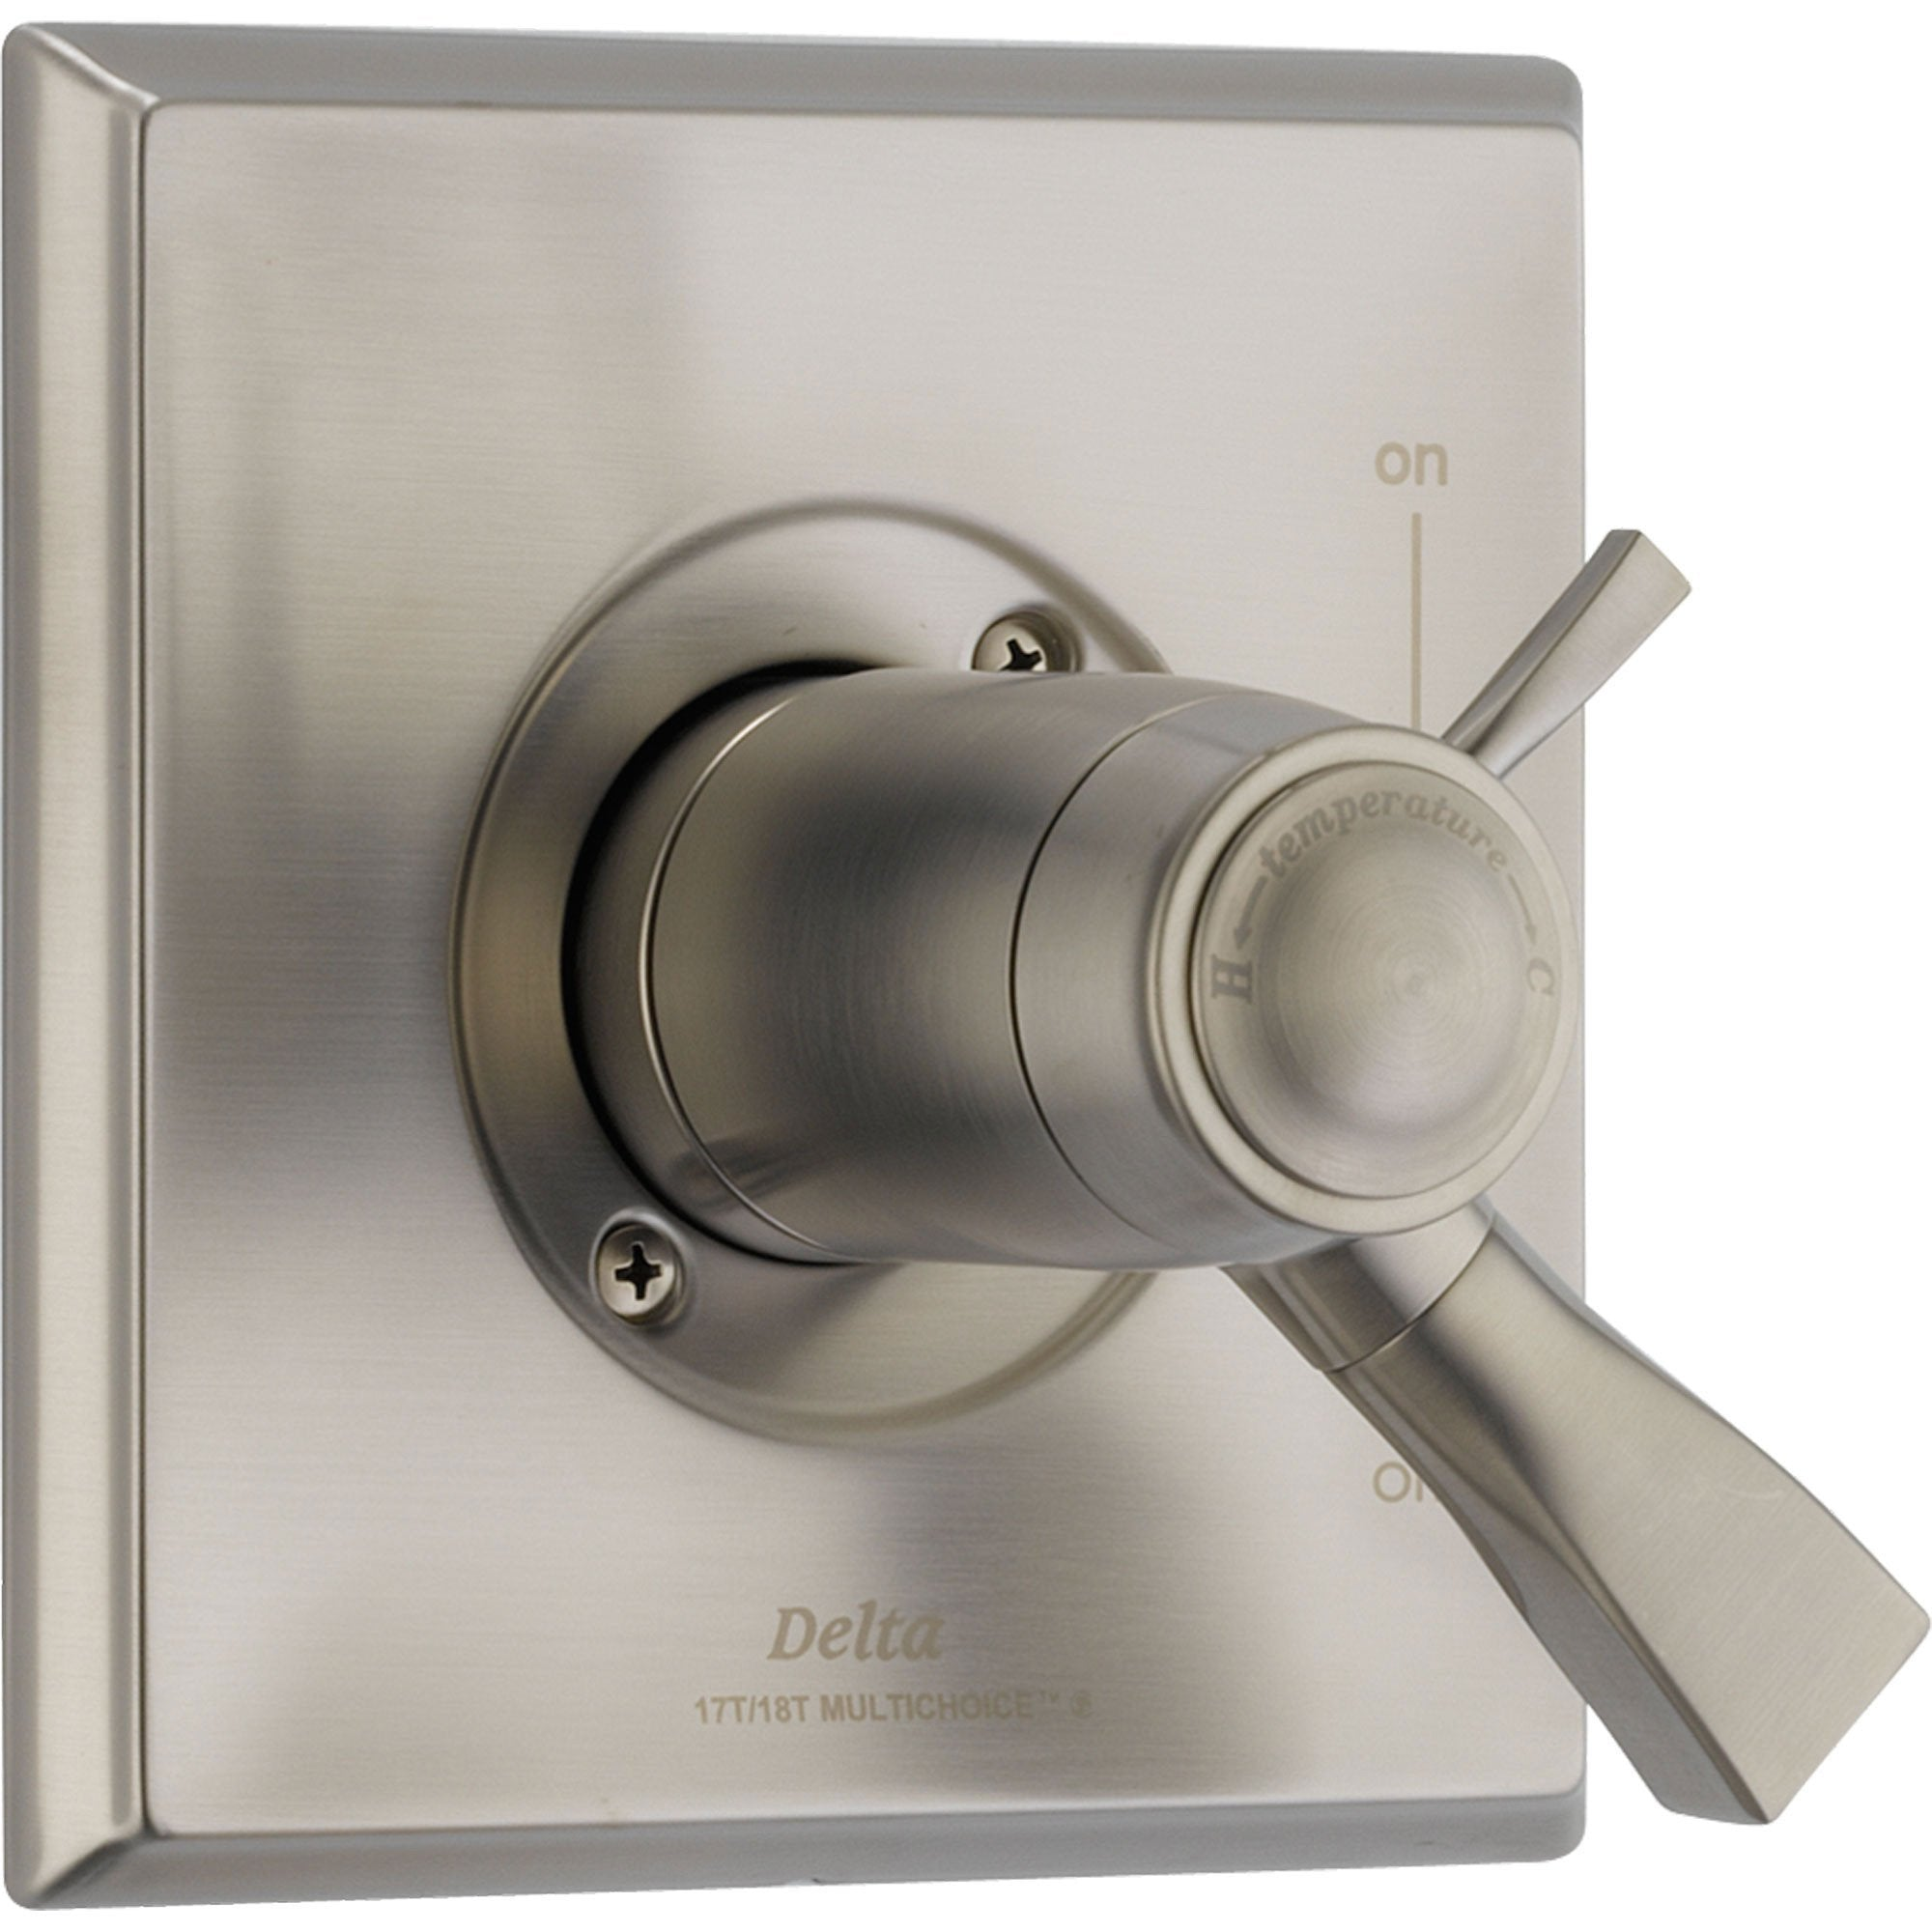 Delta Dryden Stainless Steel Thermostatic Shower Dual Control with Valve D988V